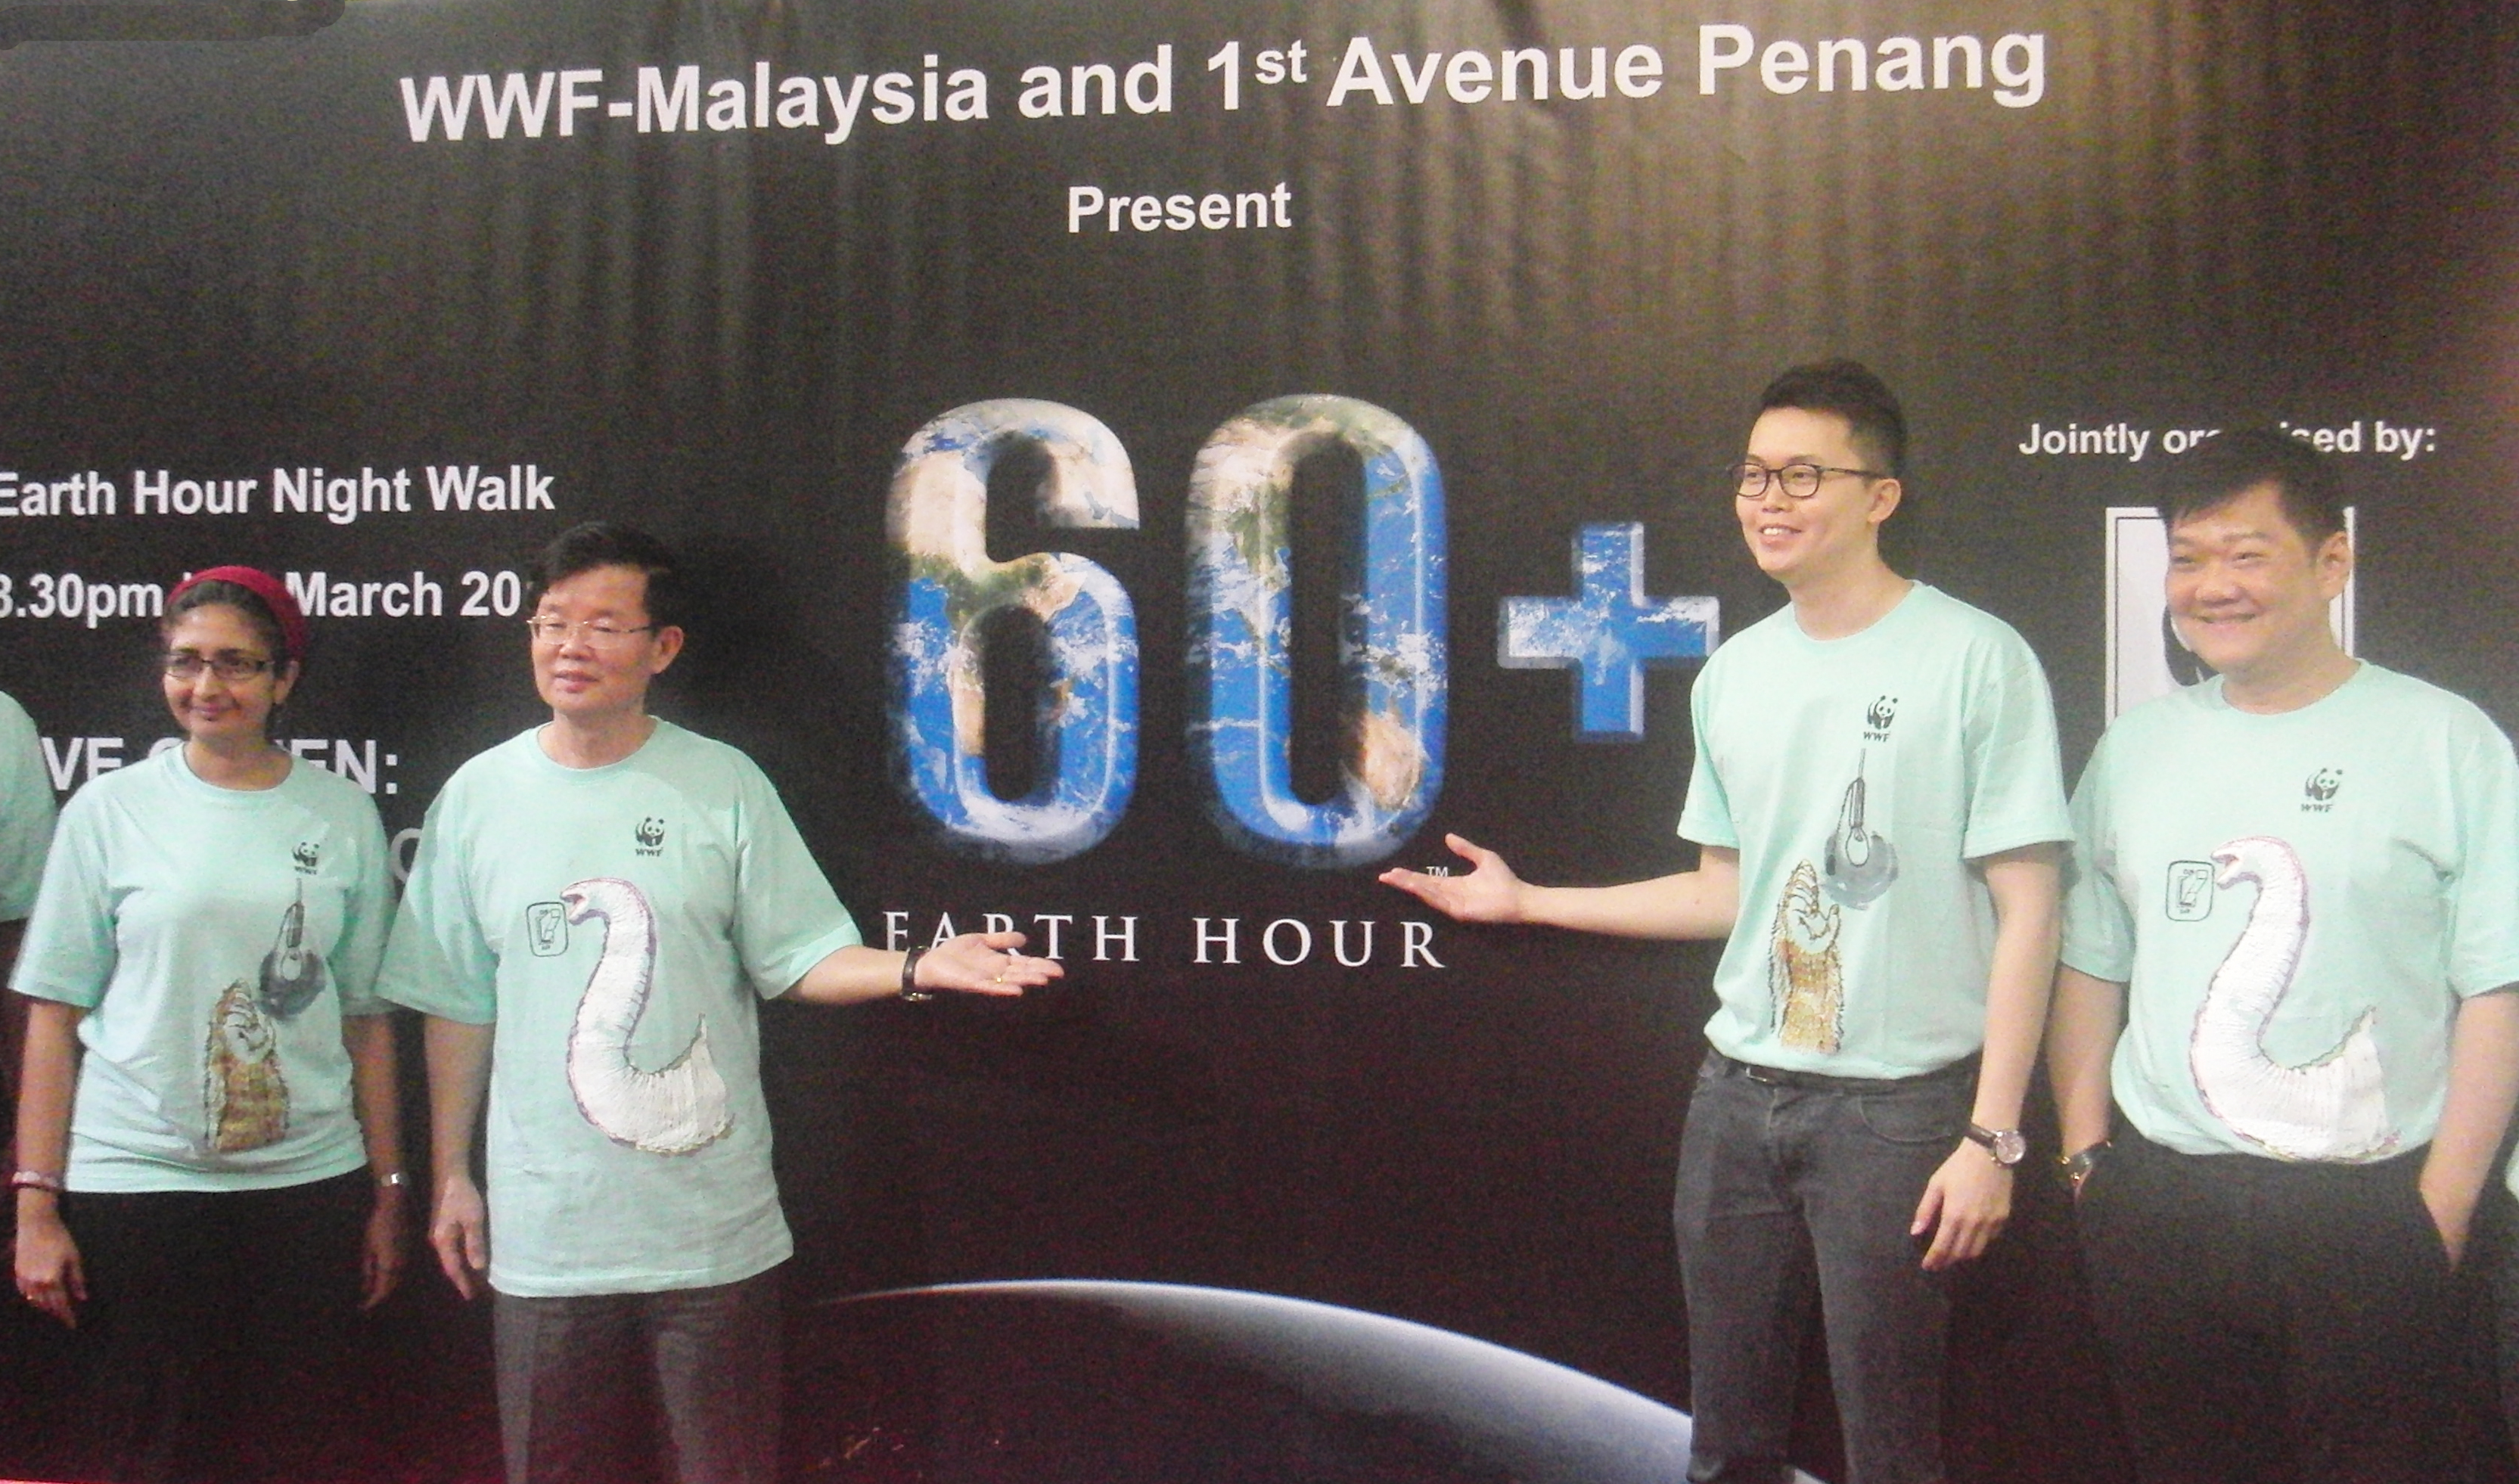 Earth Hour 2015 Kicks Off in Penang for the Second Time | WWF Malaysia